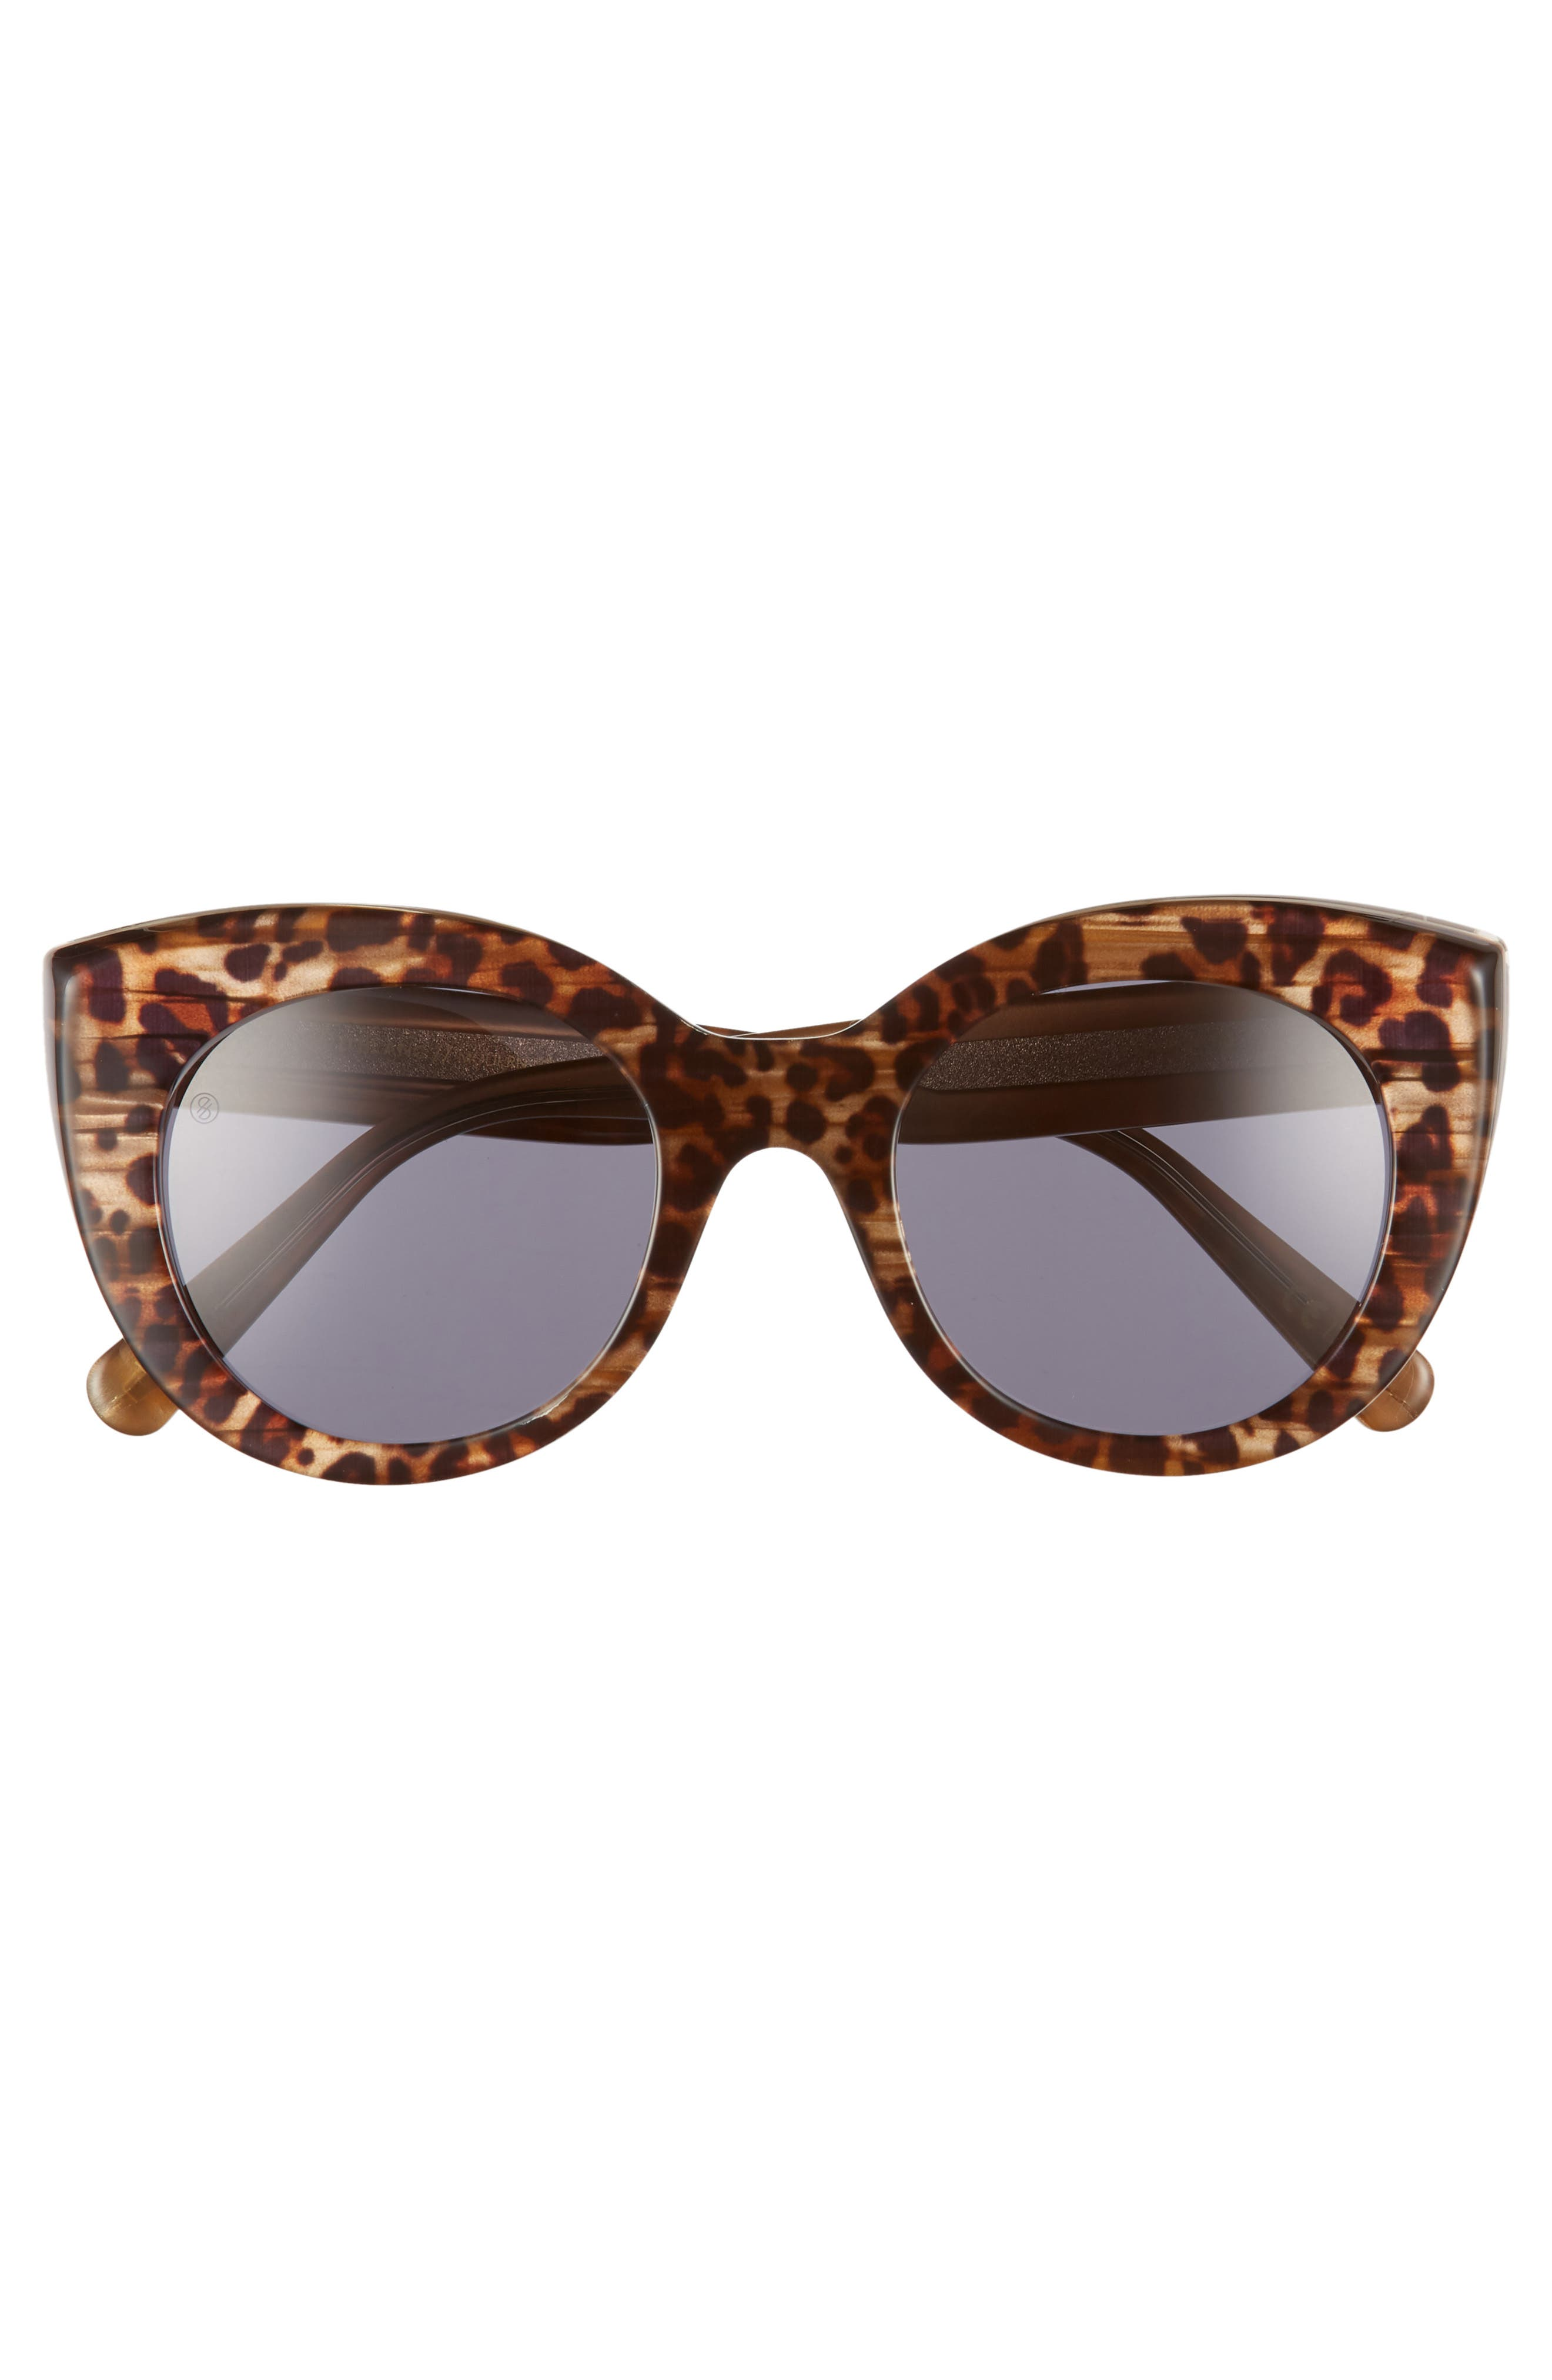 D'BLANC x Amuse Society Modern Lover 51mm Cat Eye Sunglasses,                             Alternate thumbnail 3, color,                             200